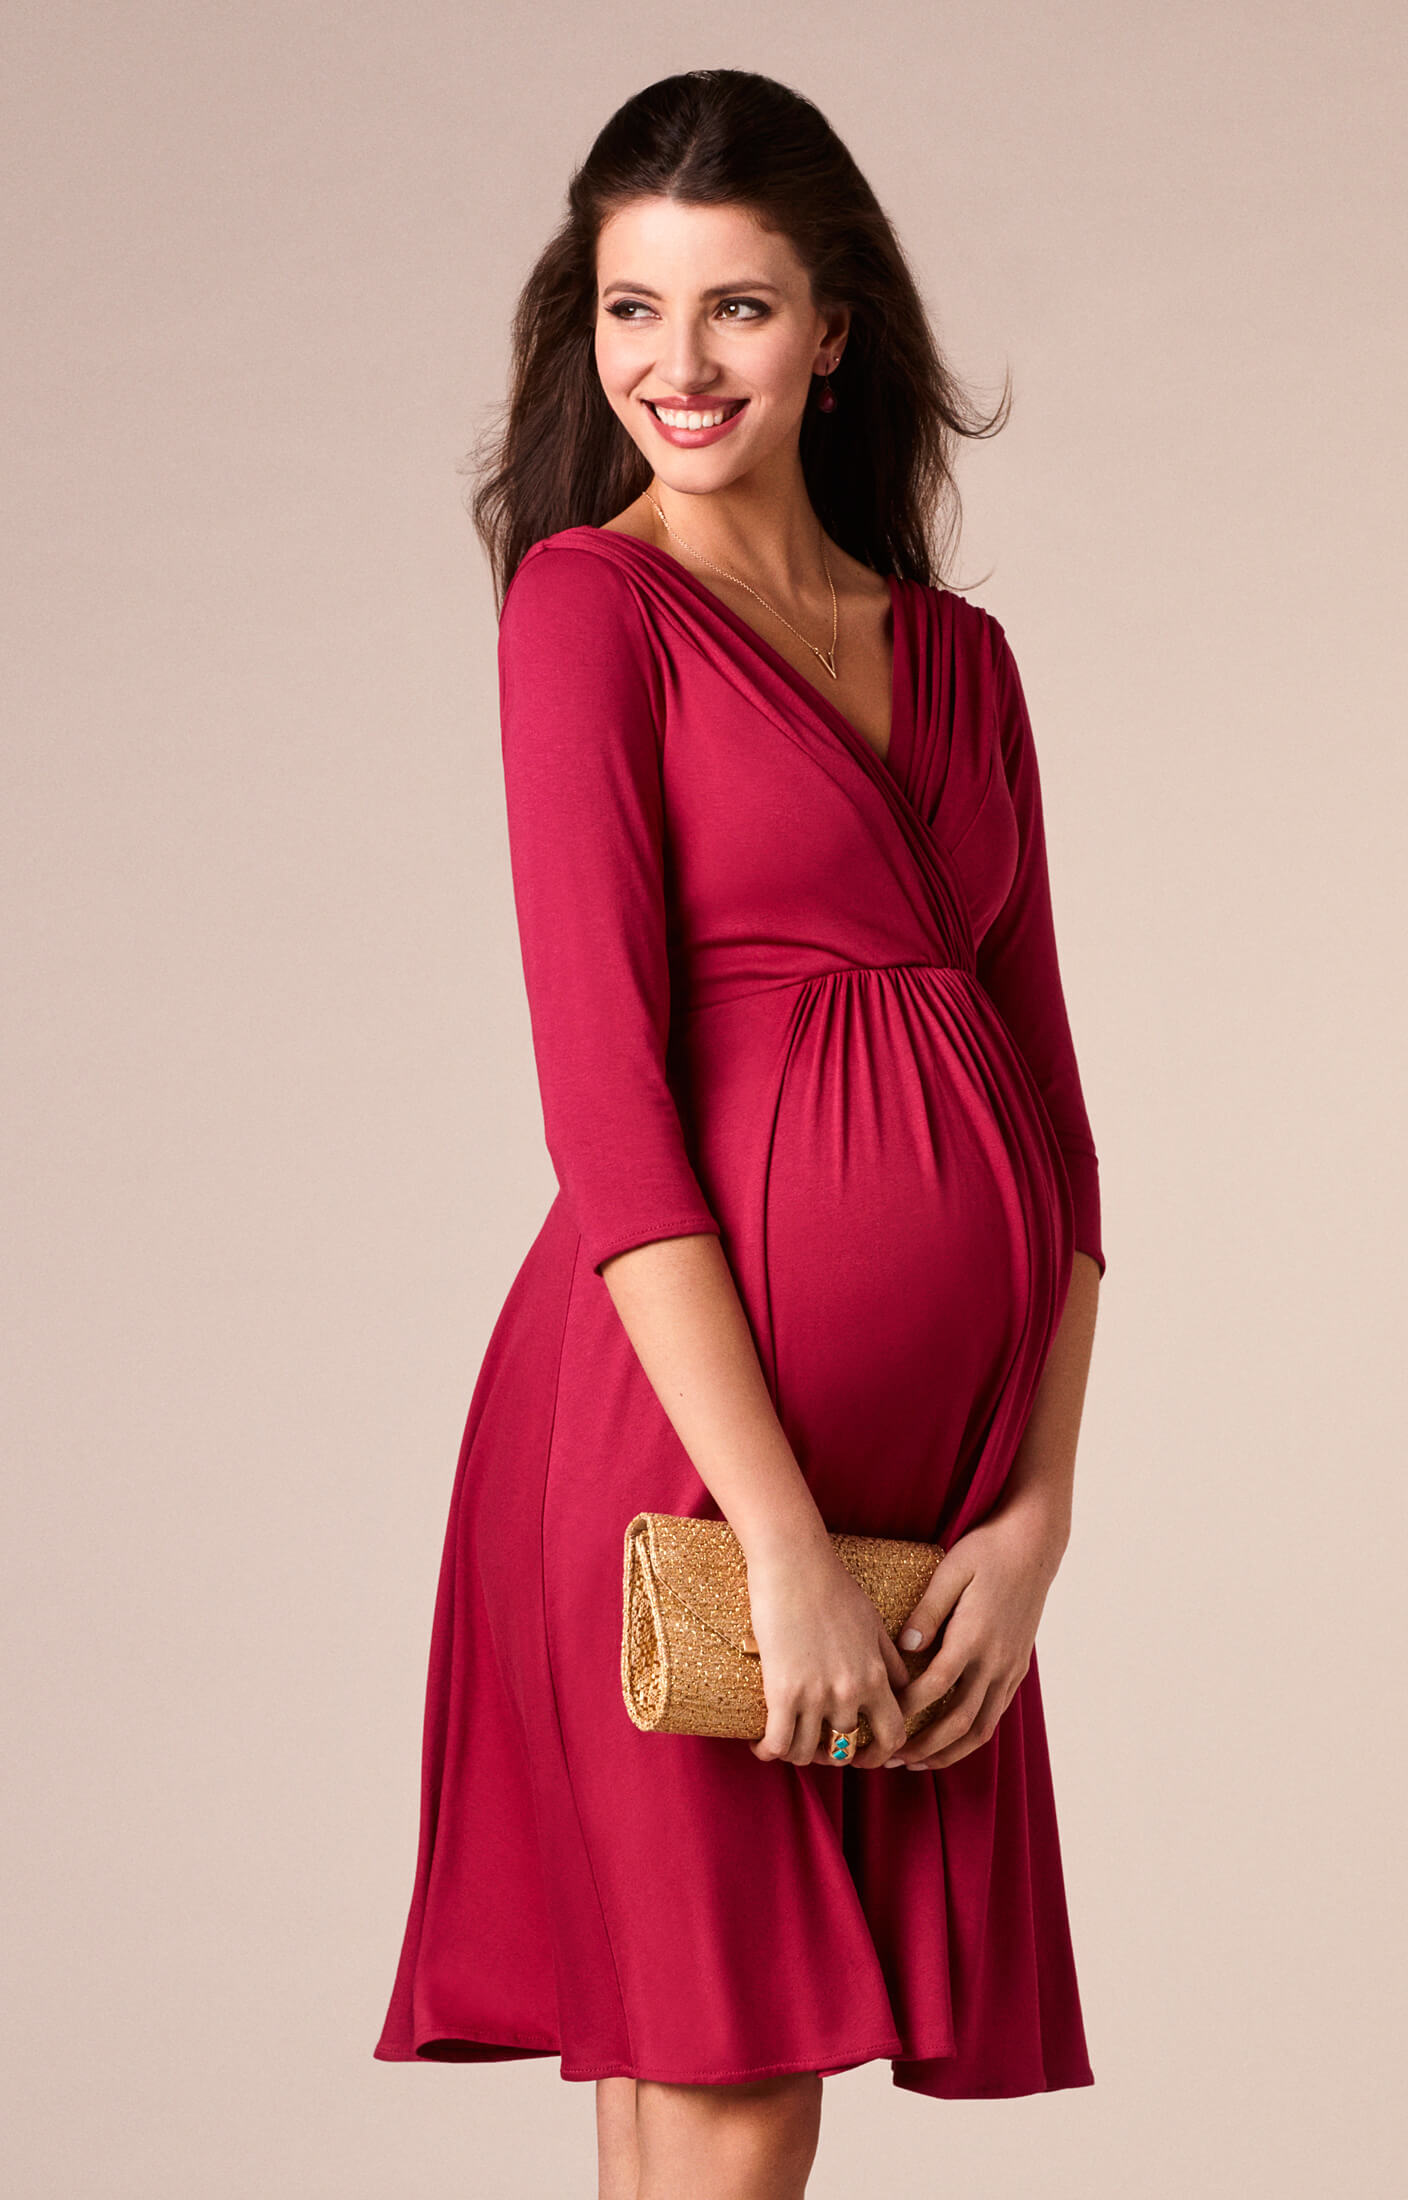 Willow maternity dress raspberry pink maternity wedding dresses willow maternity dress raspberry pink by tiffany rose ombrellifo Images